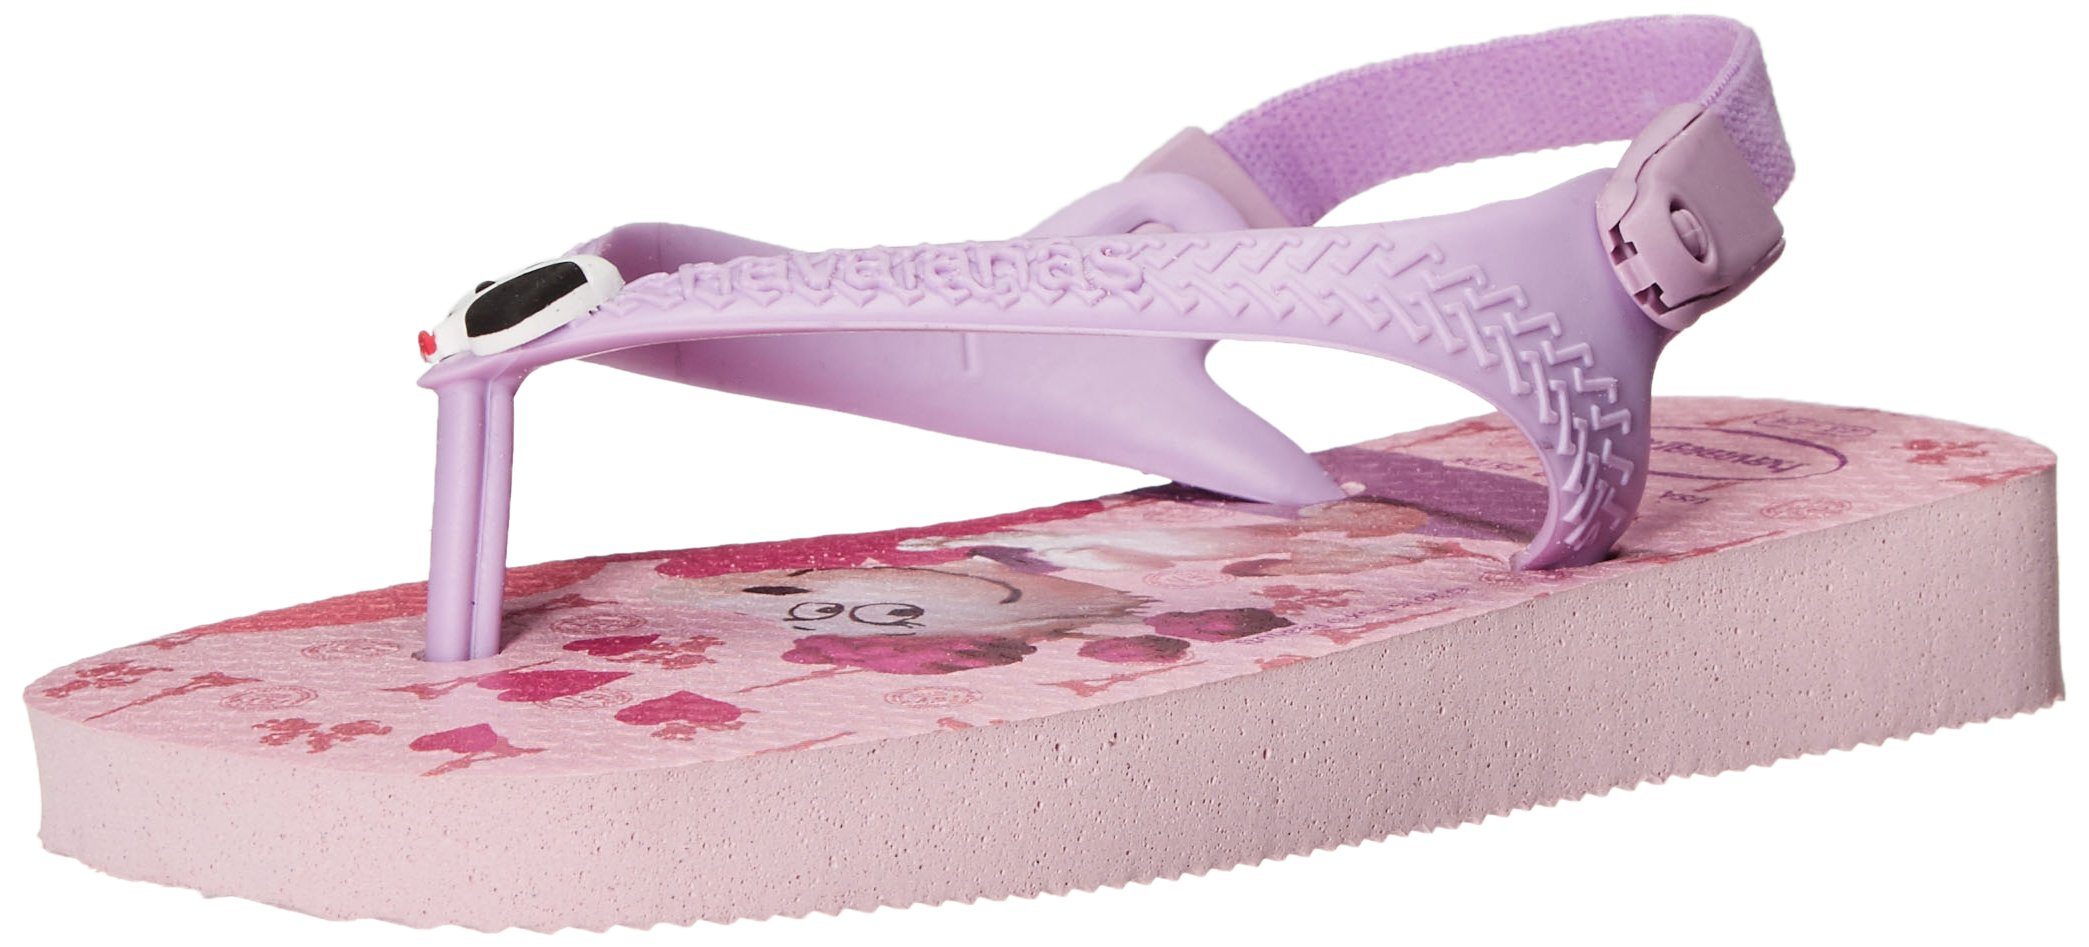 Havaianas Baby Flip Flop Sandals With Backstrap, Peanuts, Snoopy and Fifi,Pink/Lilac,21 BR (7 M US Toddler)